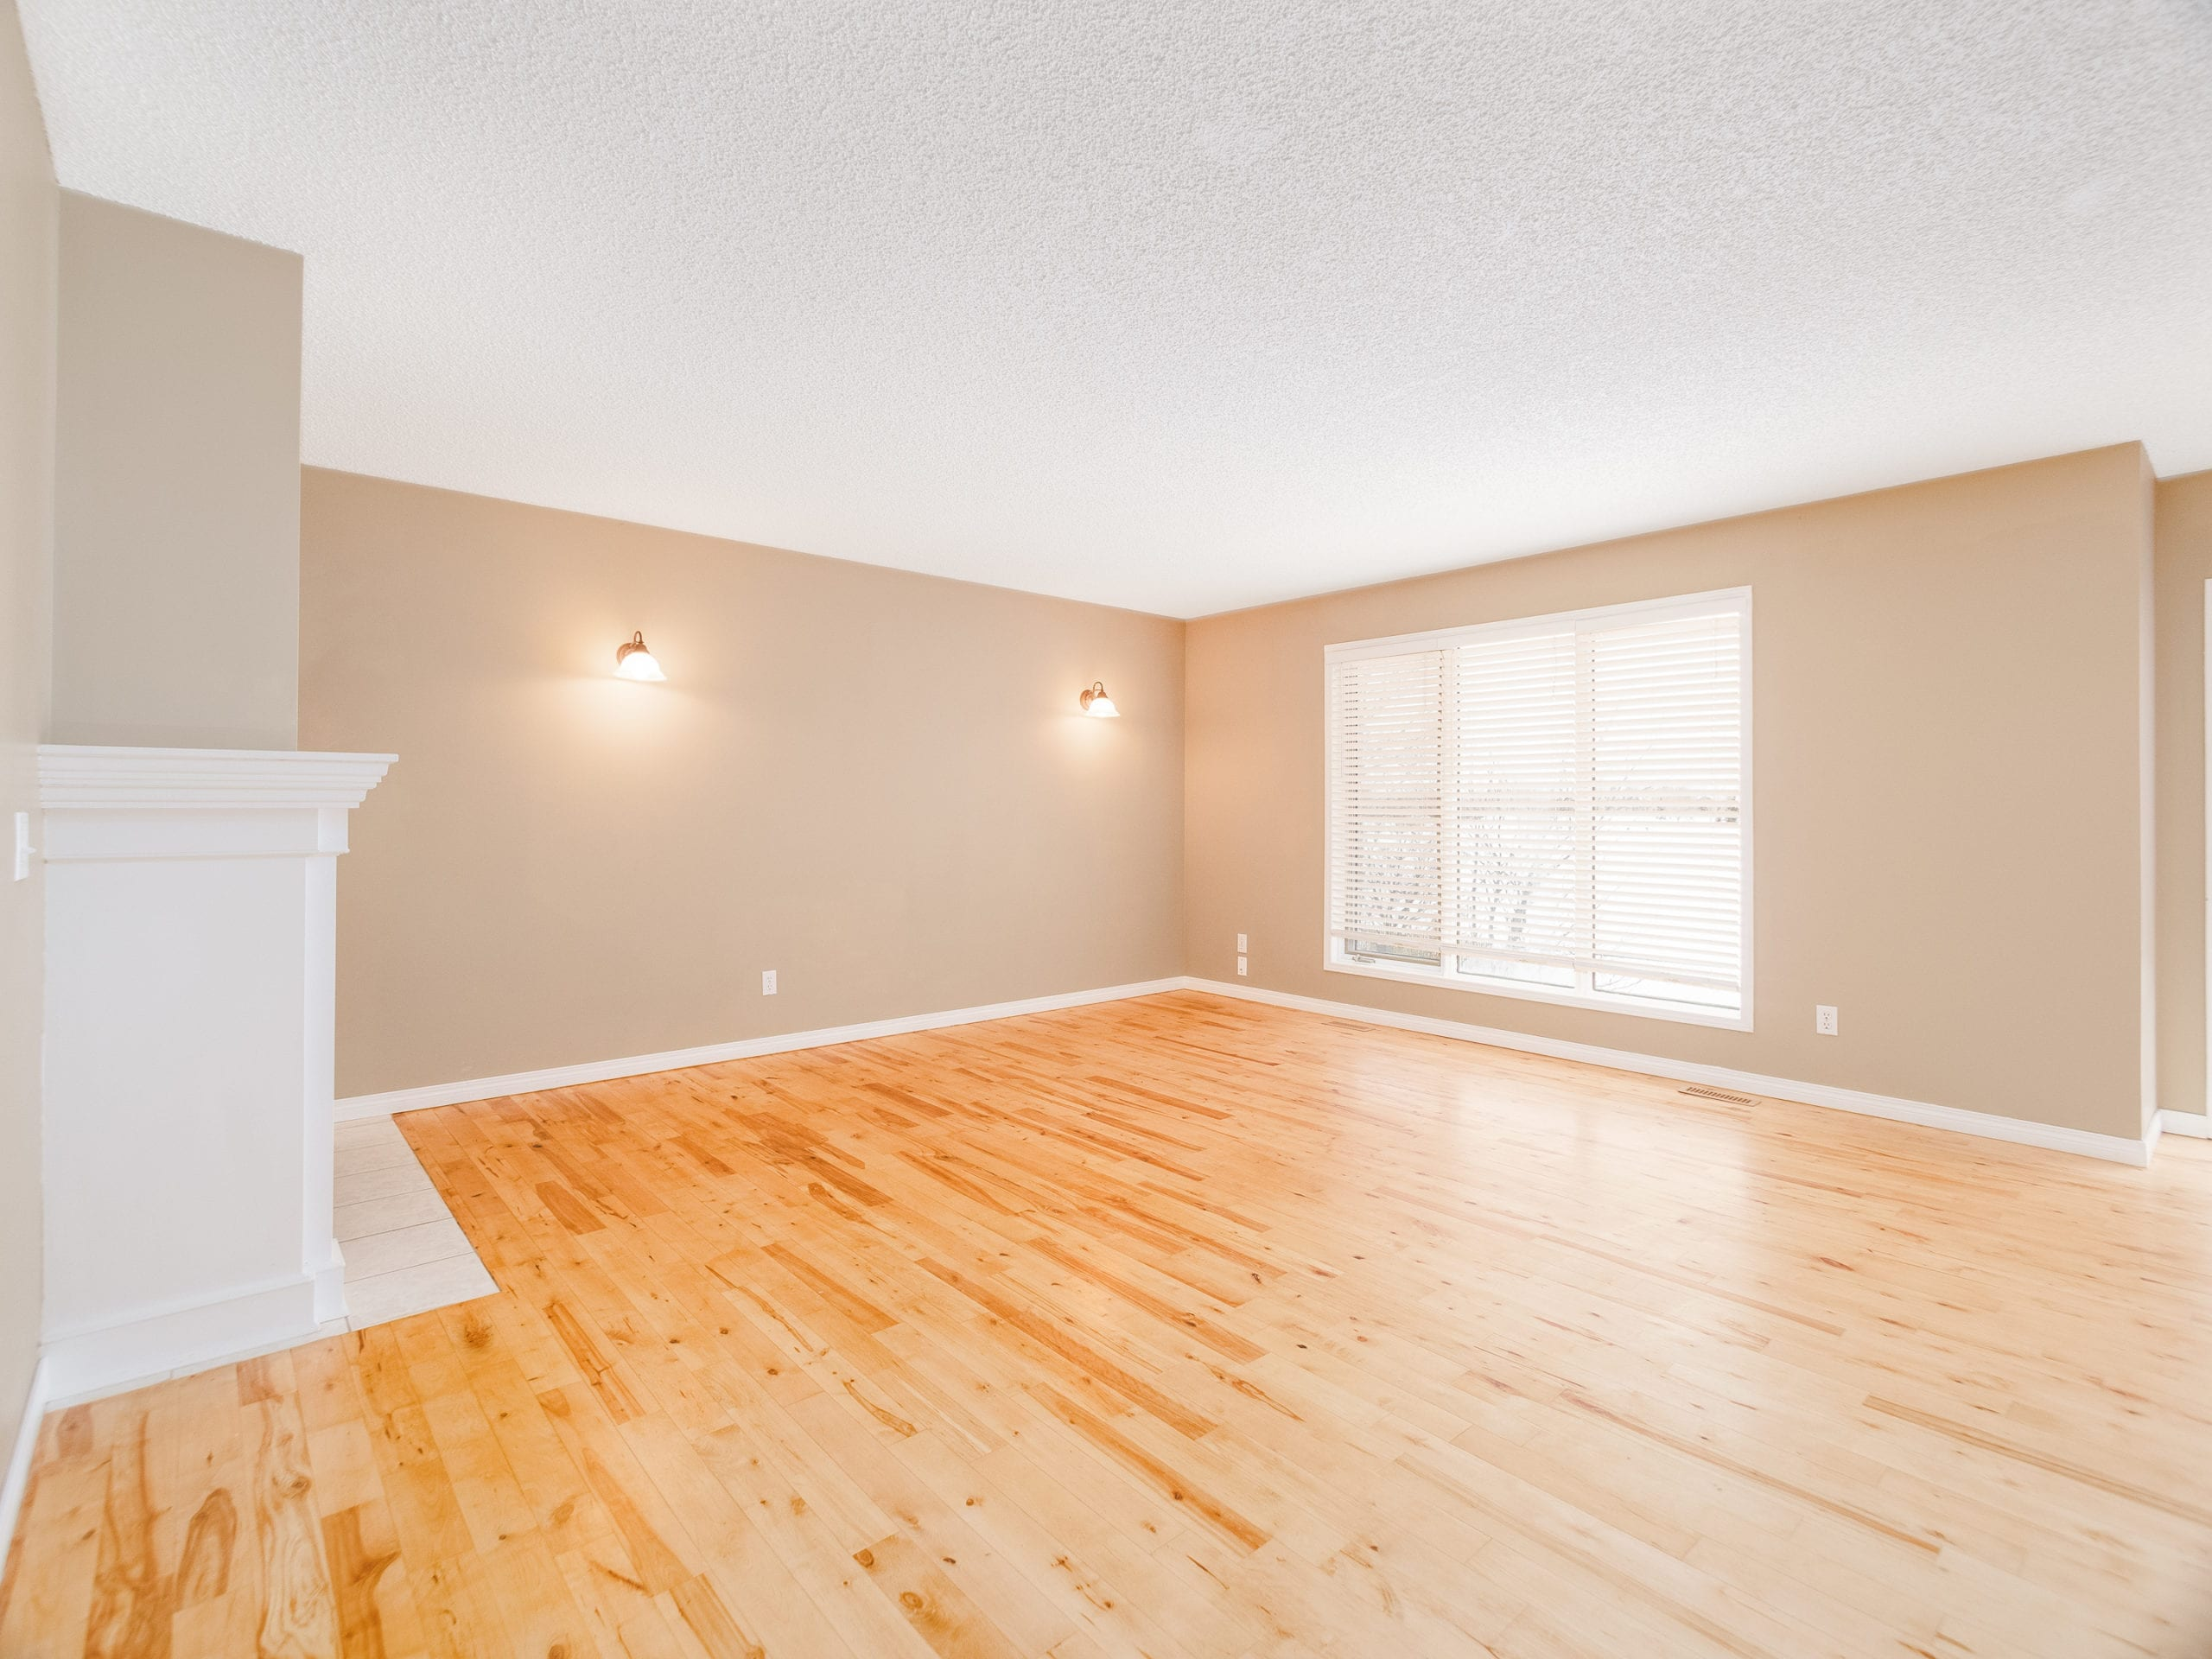 Hello Gorgeous - 143 Woodside Road NW, Airdrie AB. - Tara Molina Real Estate (7 of 54)